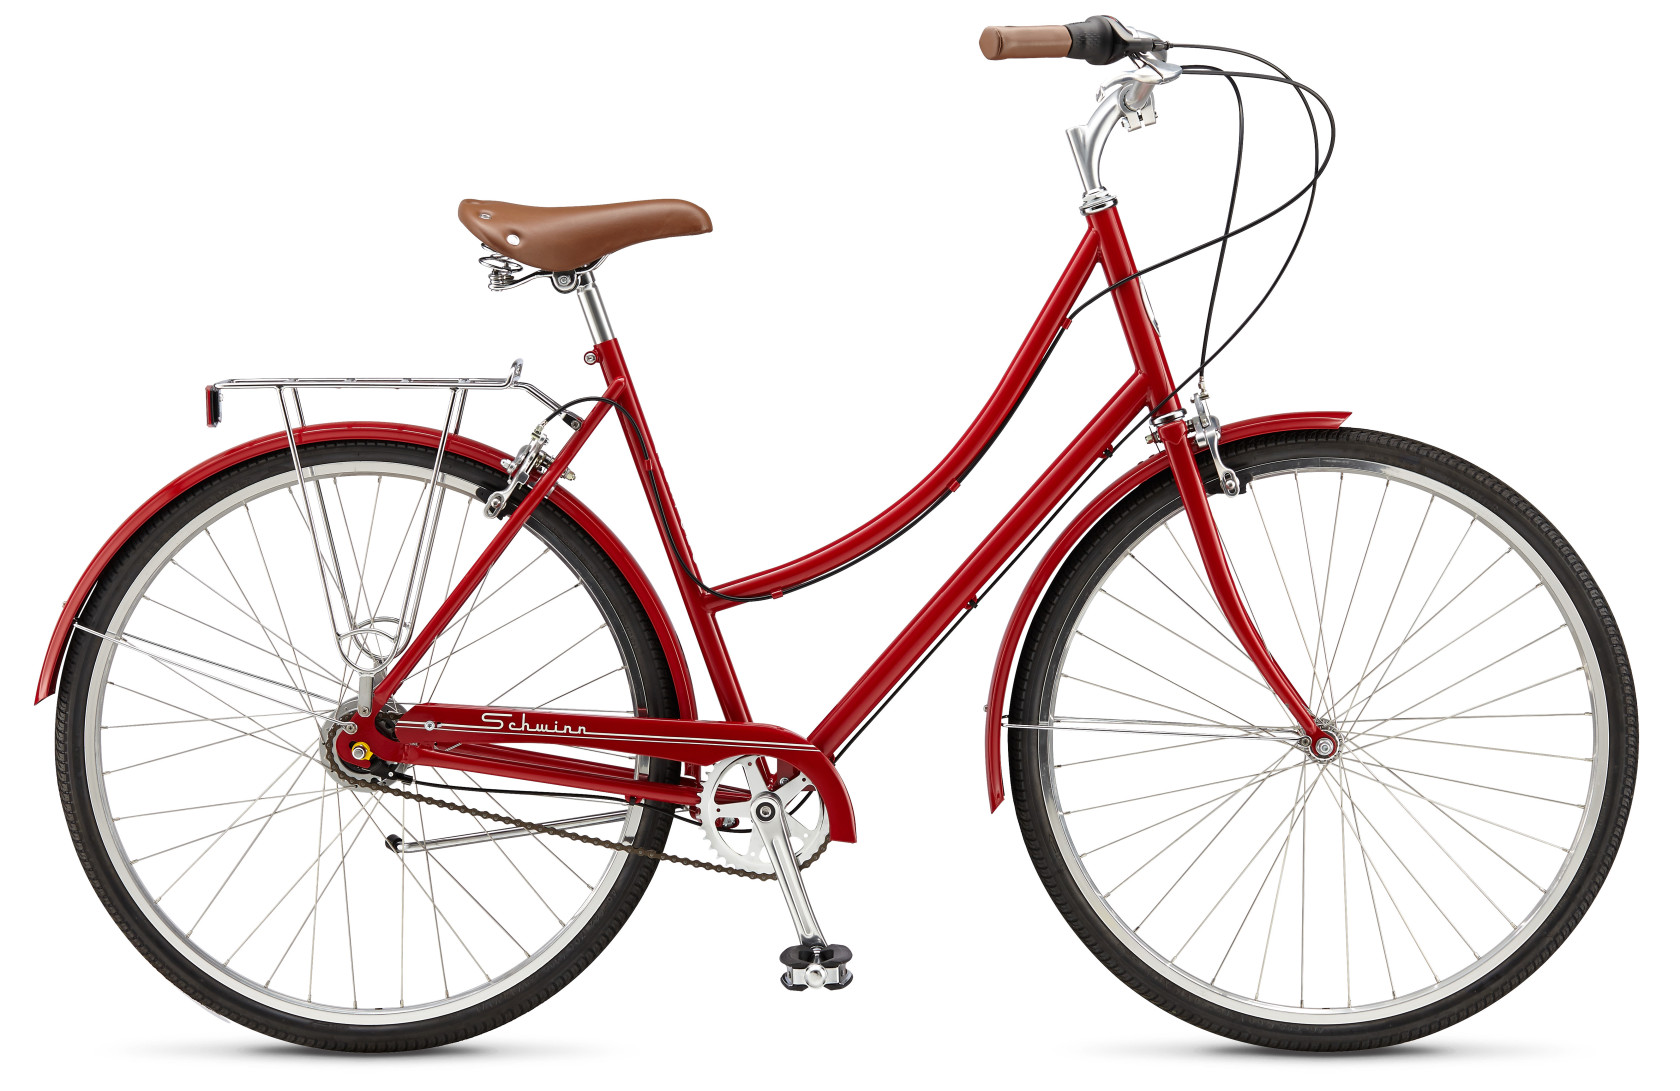 Schwinn Allston 1 Eight Speed Bike Review